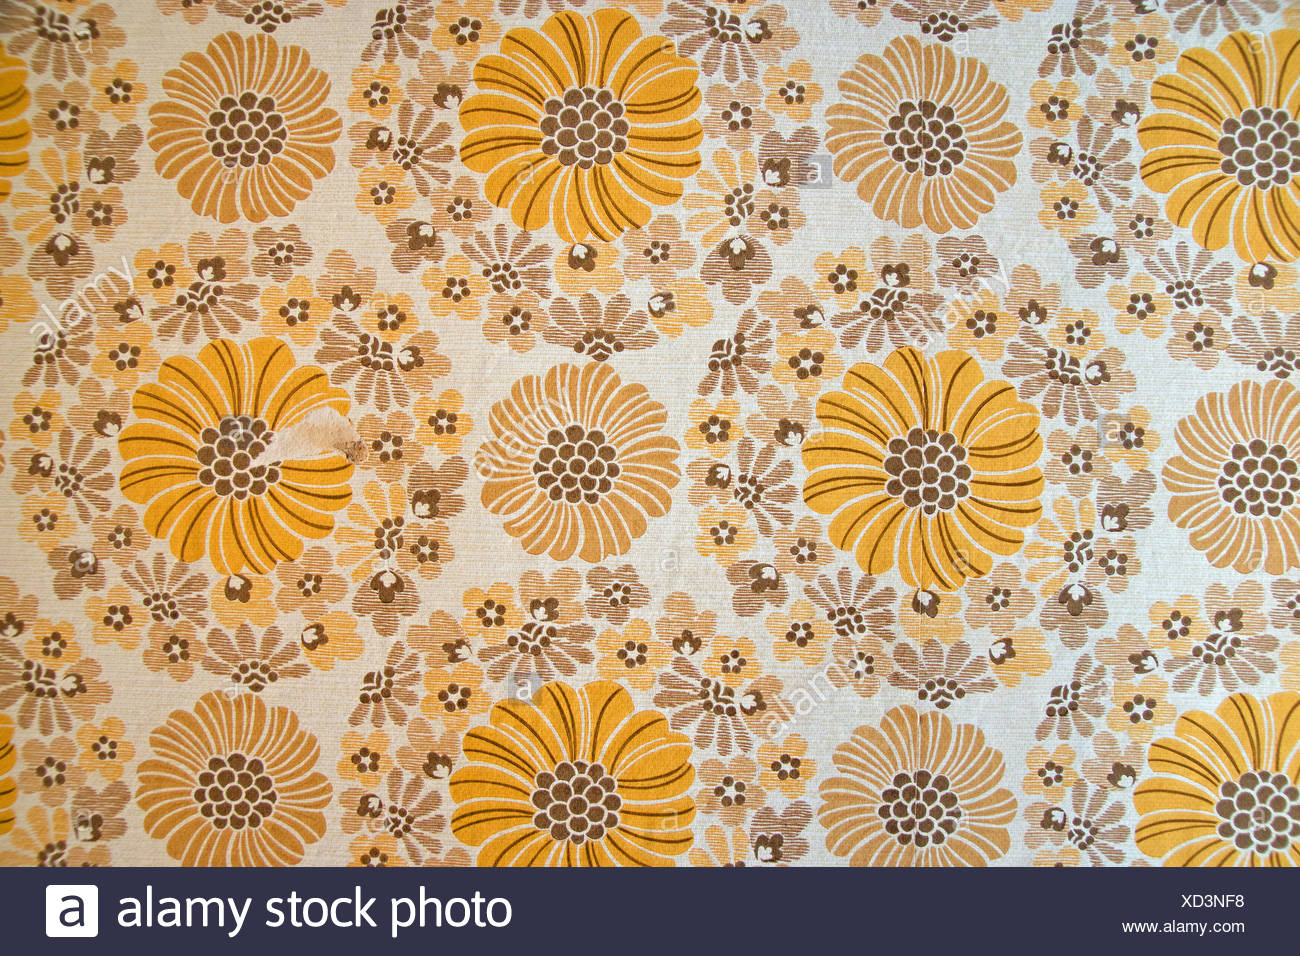 Wallpaper from the seventies - Stock Image